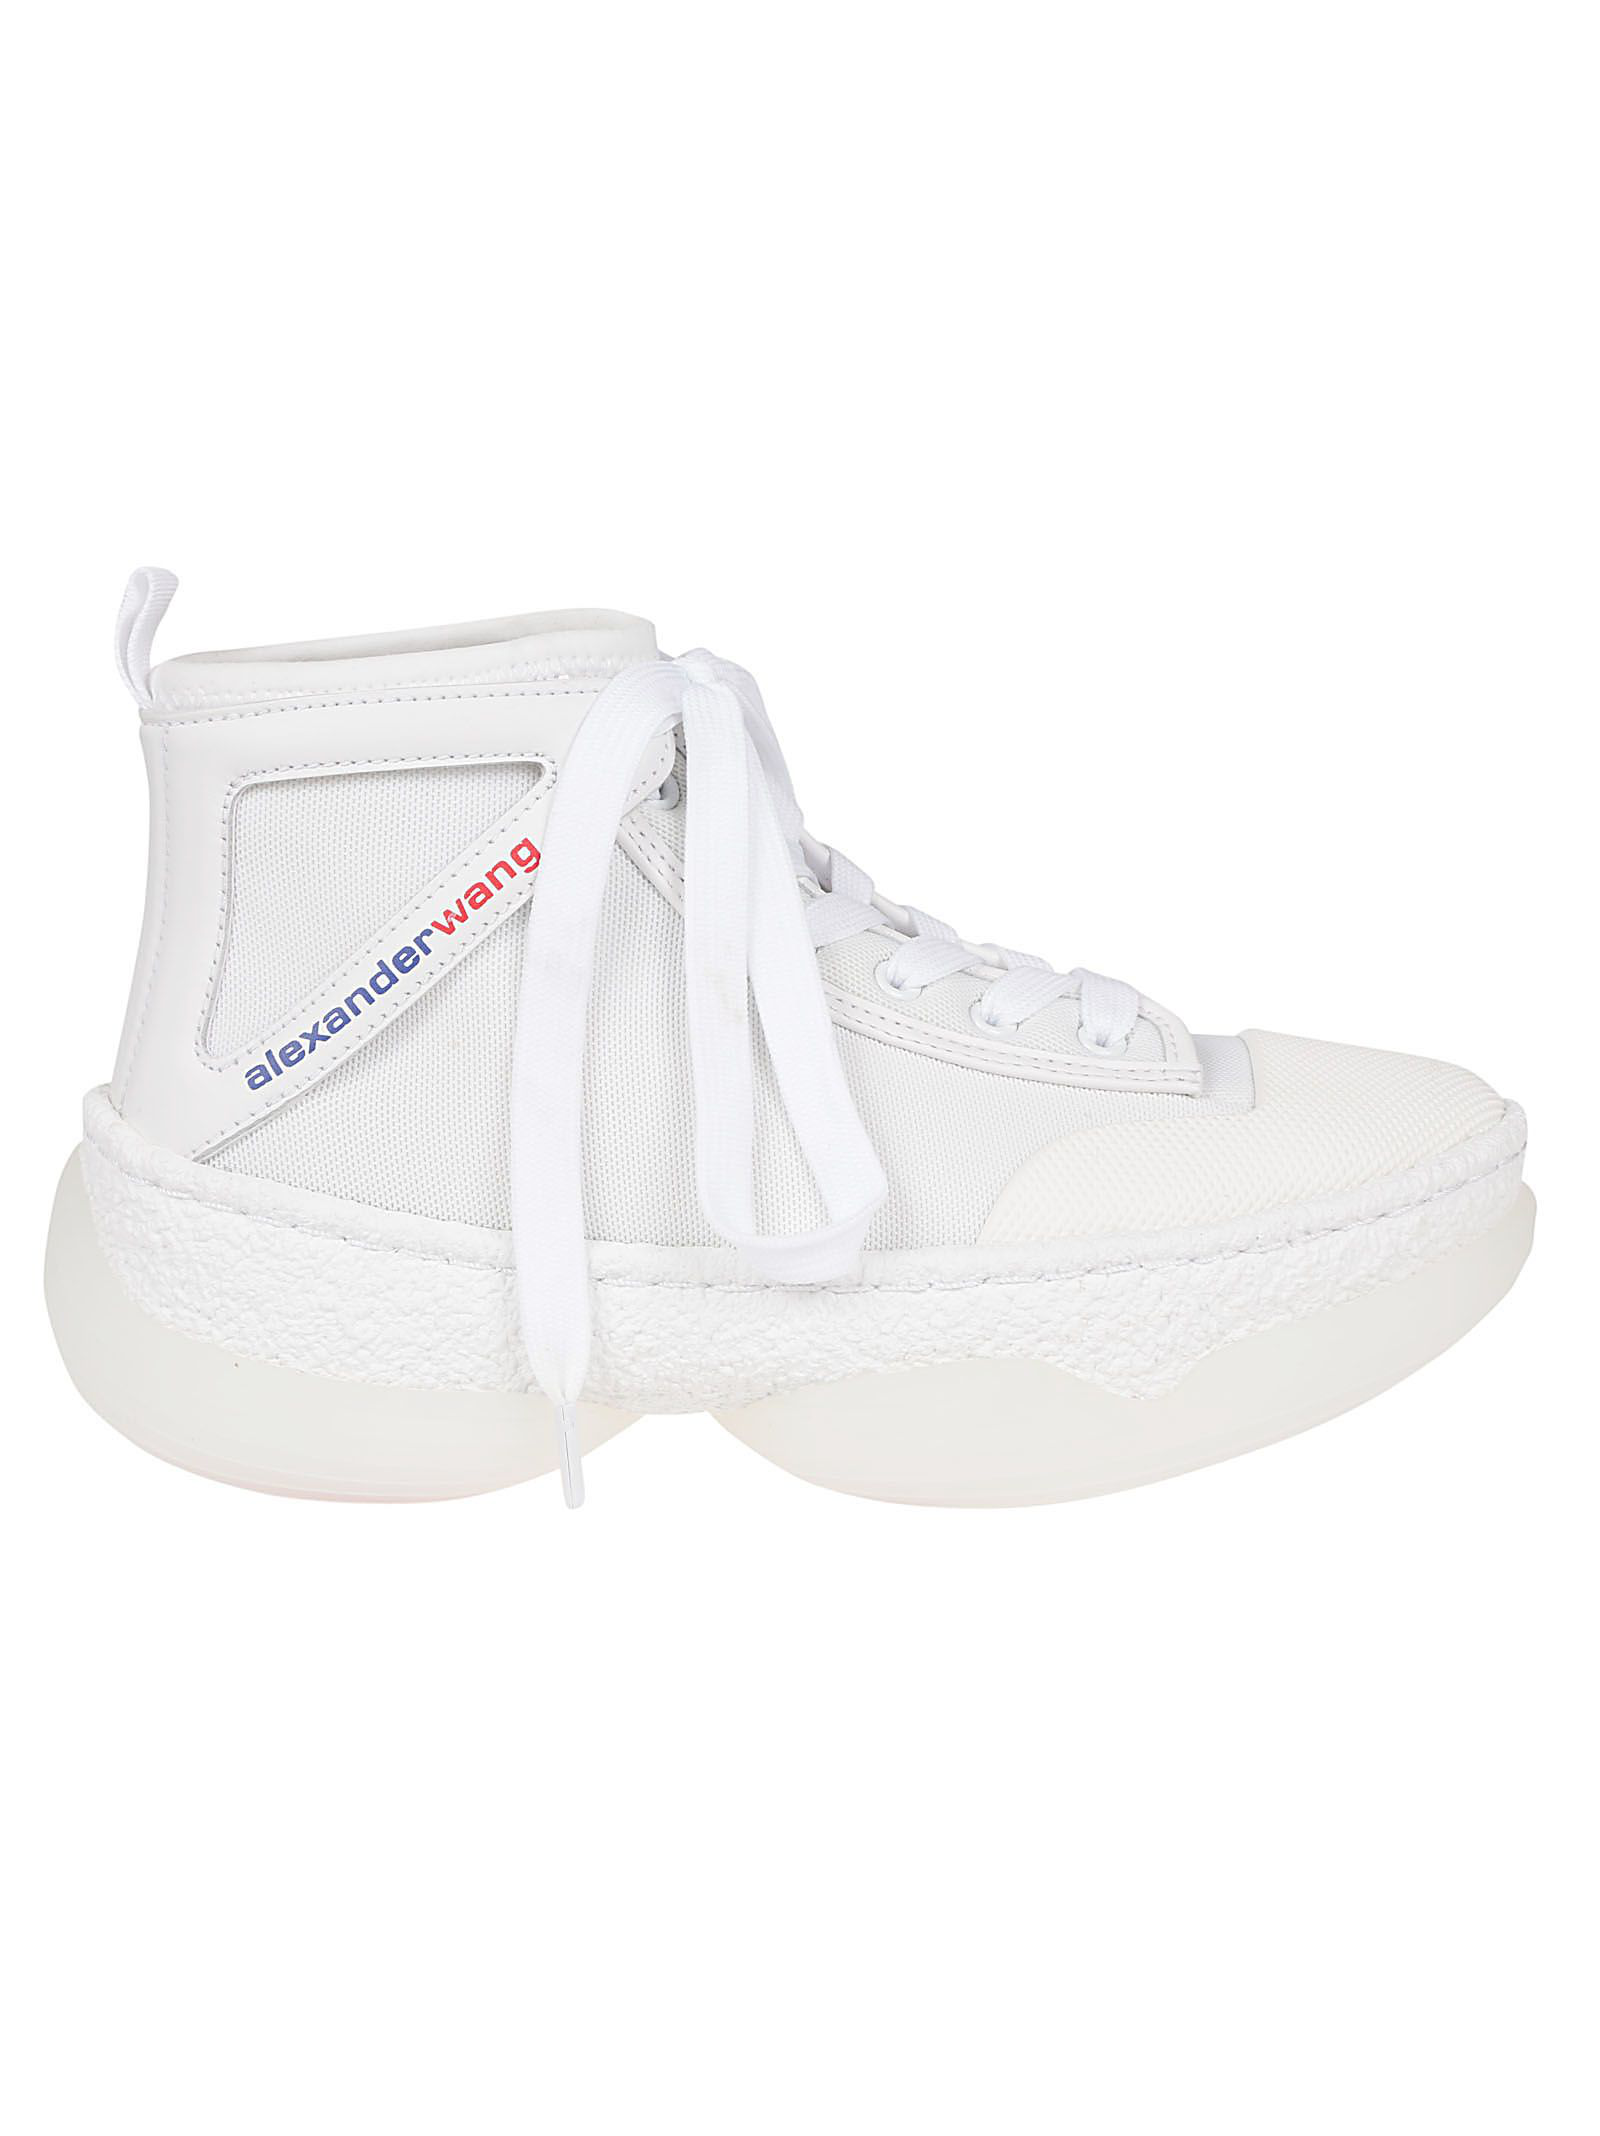 1d1dff153c2c0 Alexander Wang A1 Logo-Print Leather-Trimmed Mesh High-Top Sneakers In 100